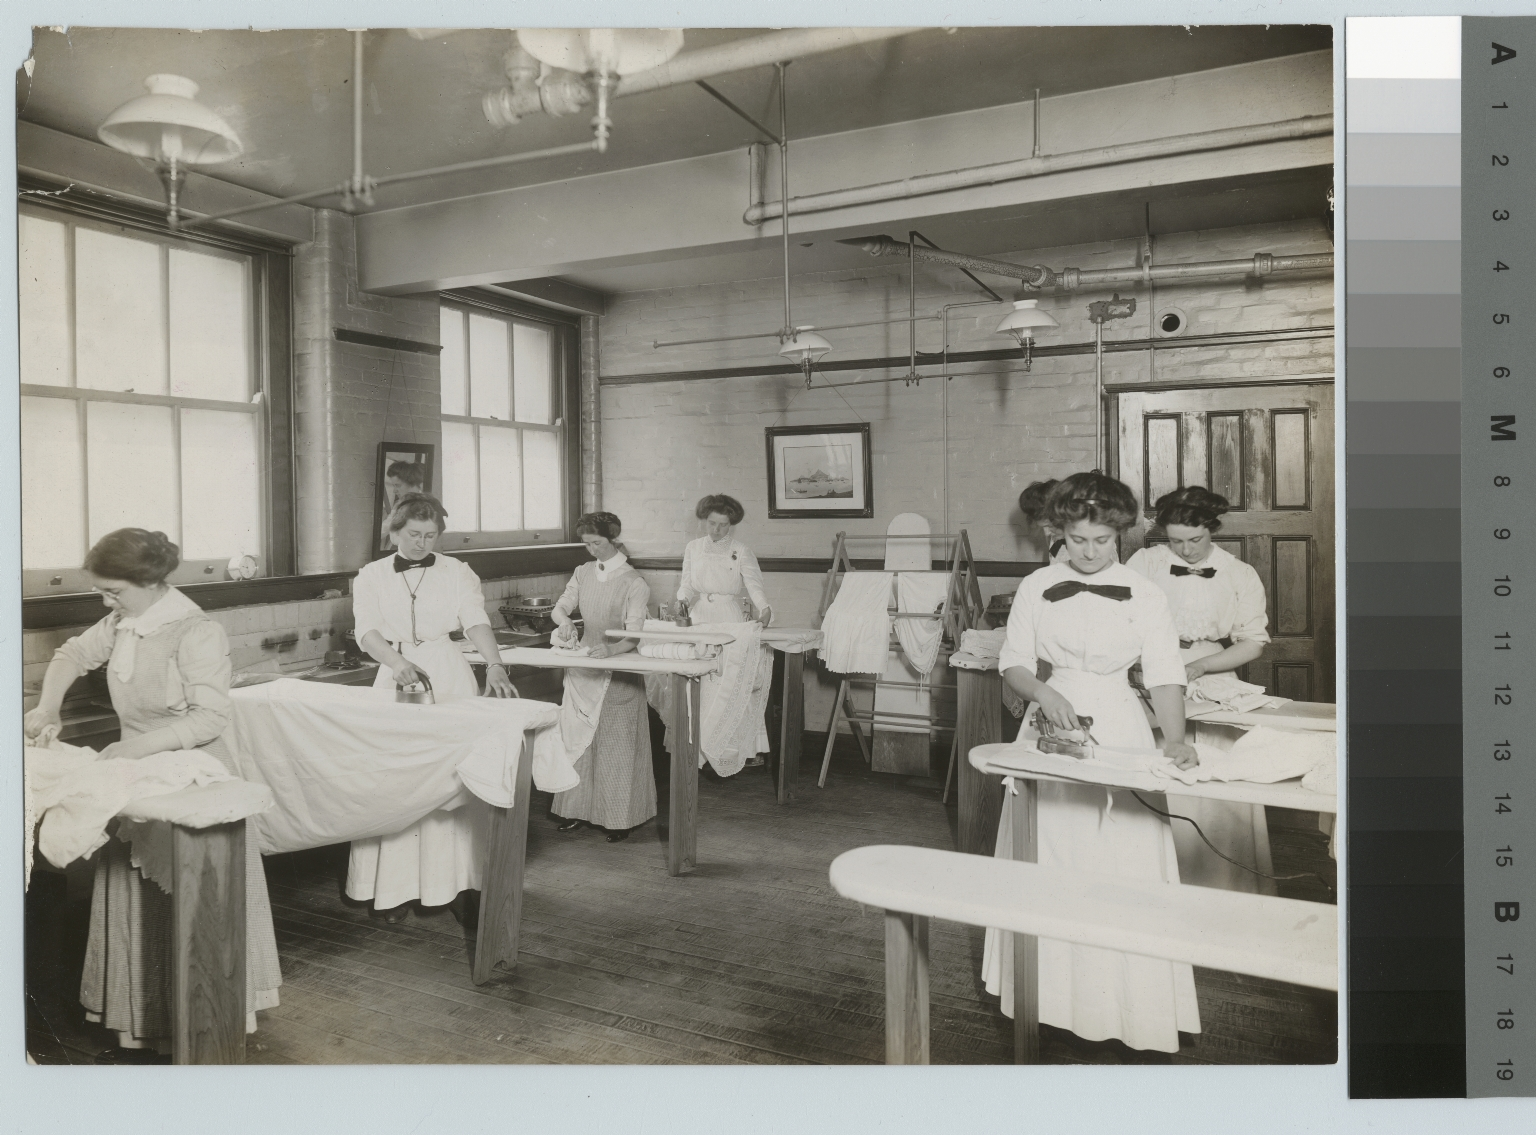 Students ironing sewing class, Department of Domestic Science and Art, Rochester Athenaeum and Mechanics Institute [1900-1915]